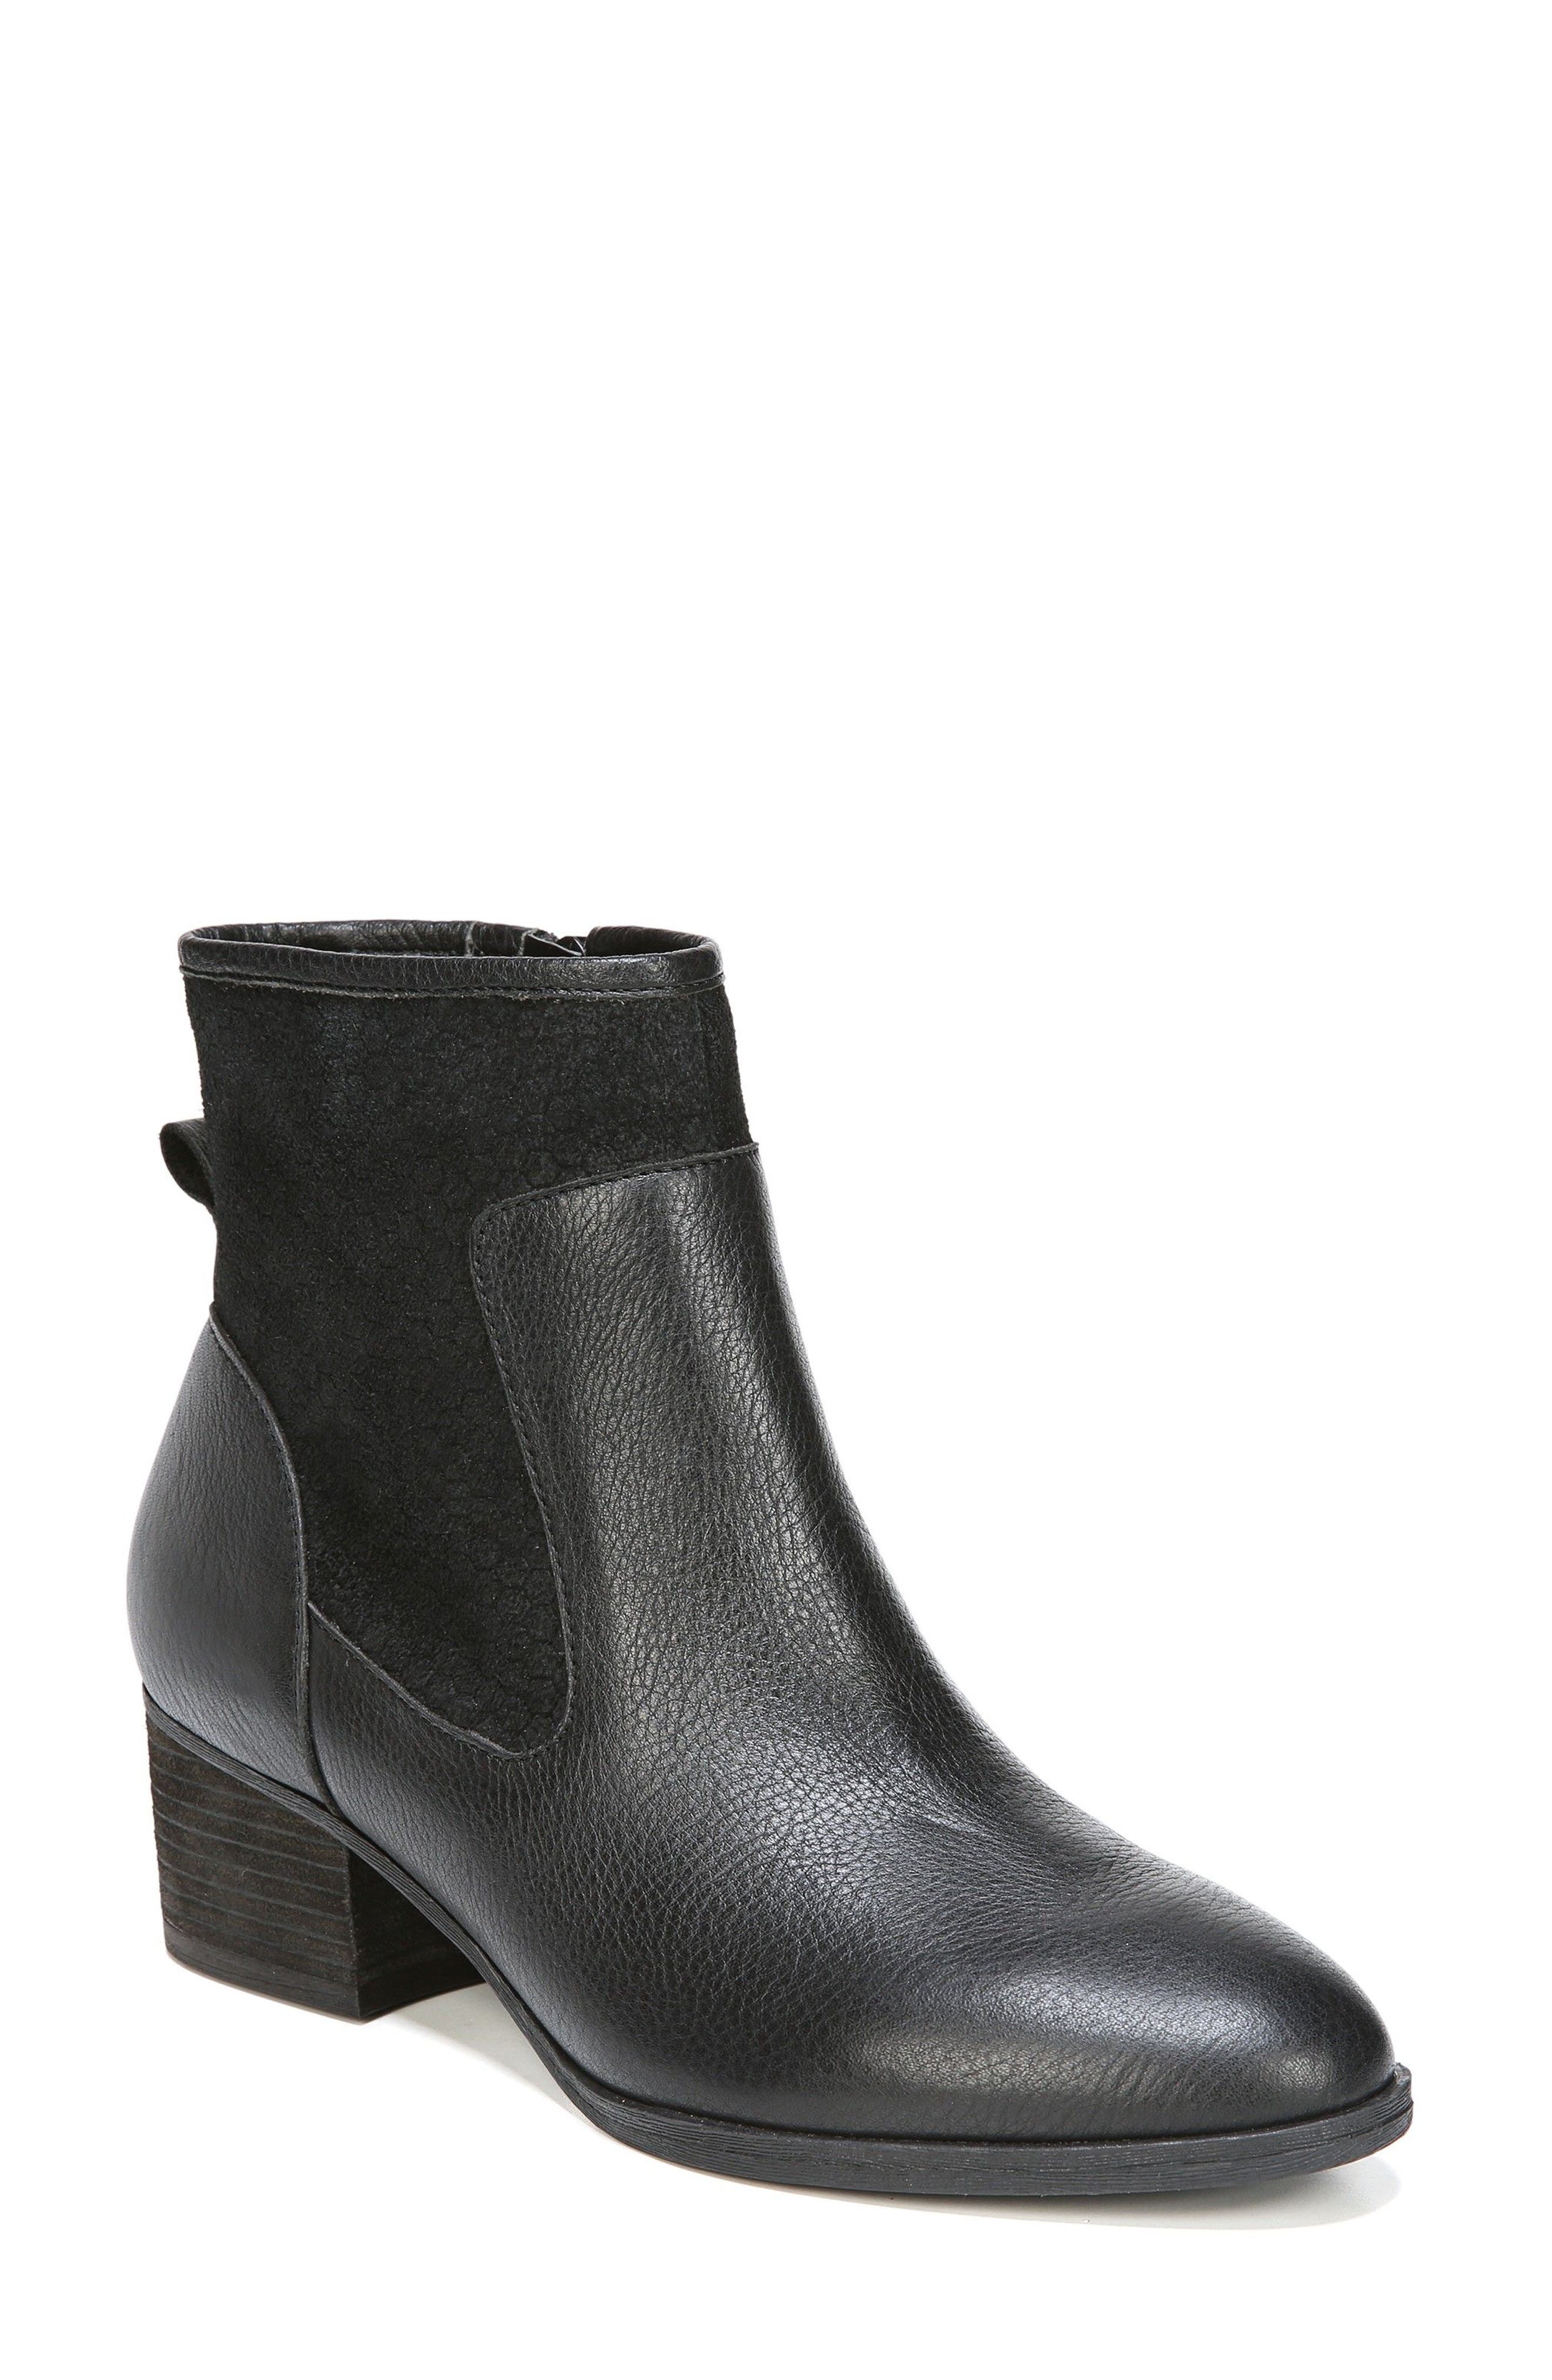 Tawny Bootie,                         Main,                         color, 001